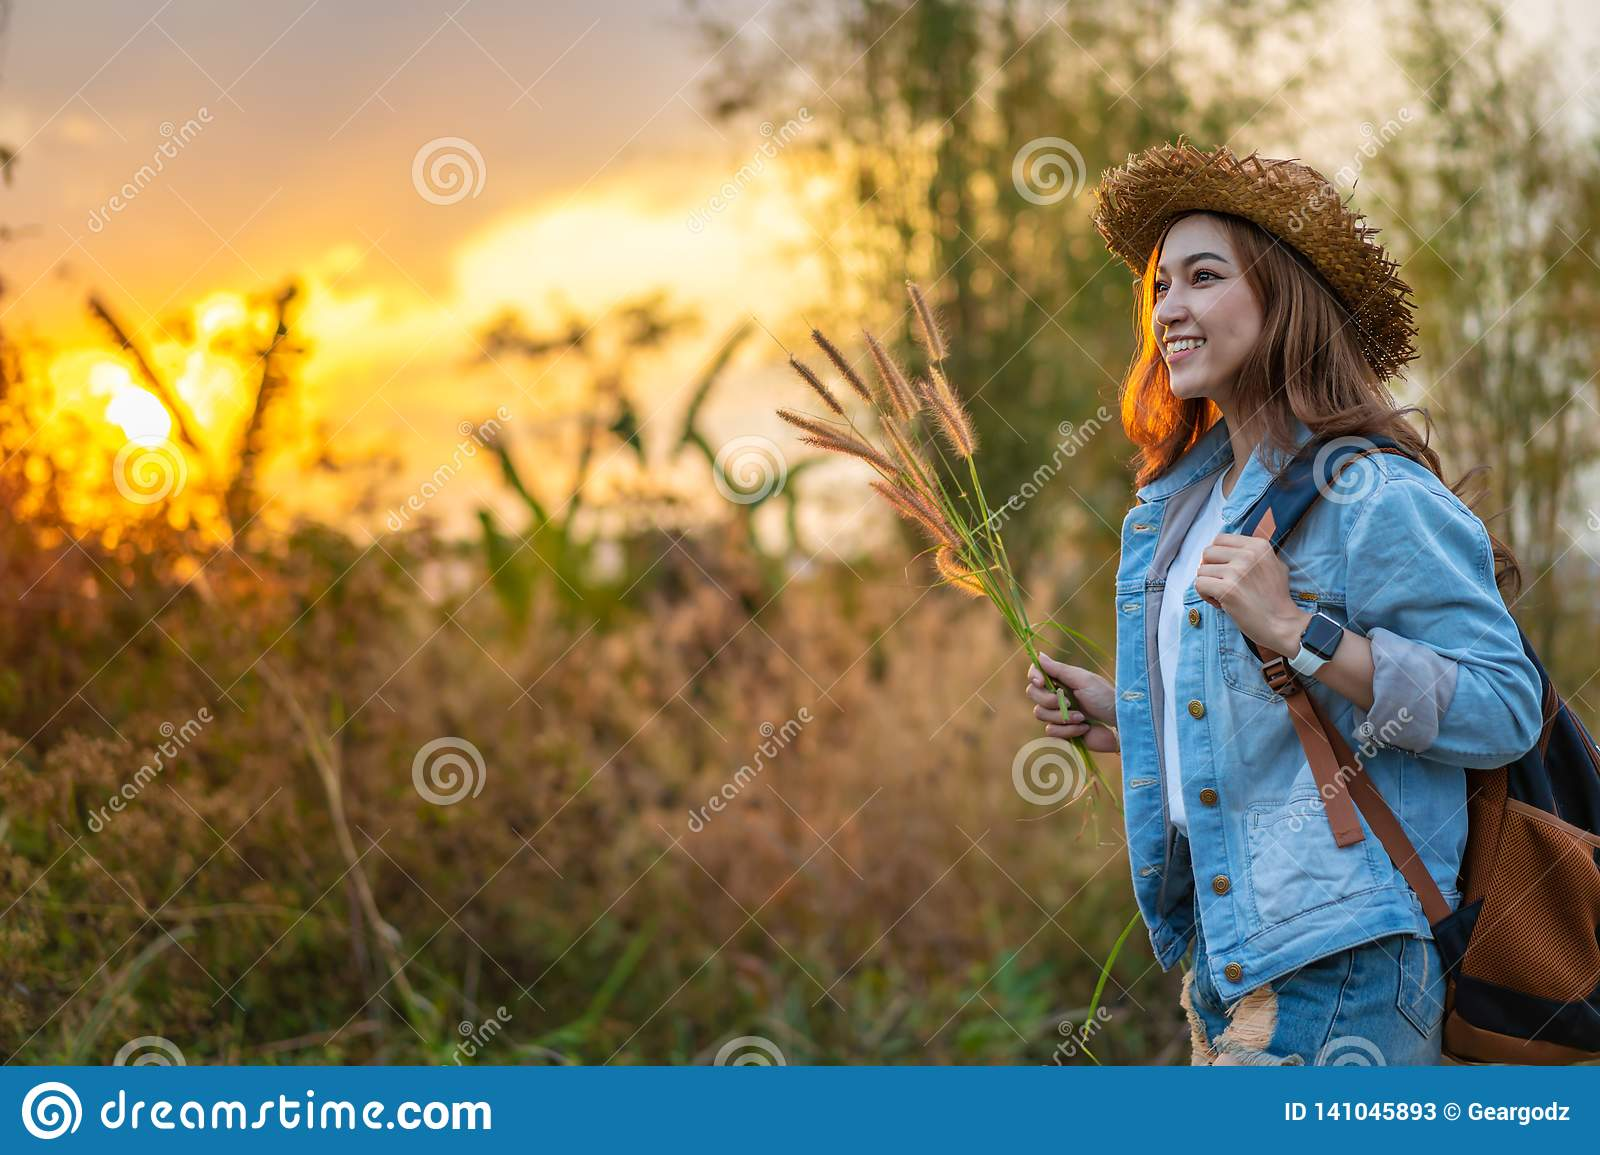 Female tourist with backpack in countryside with sunset